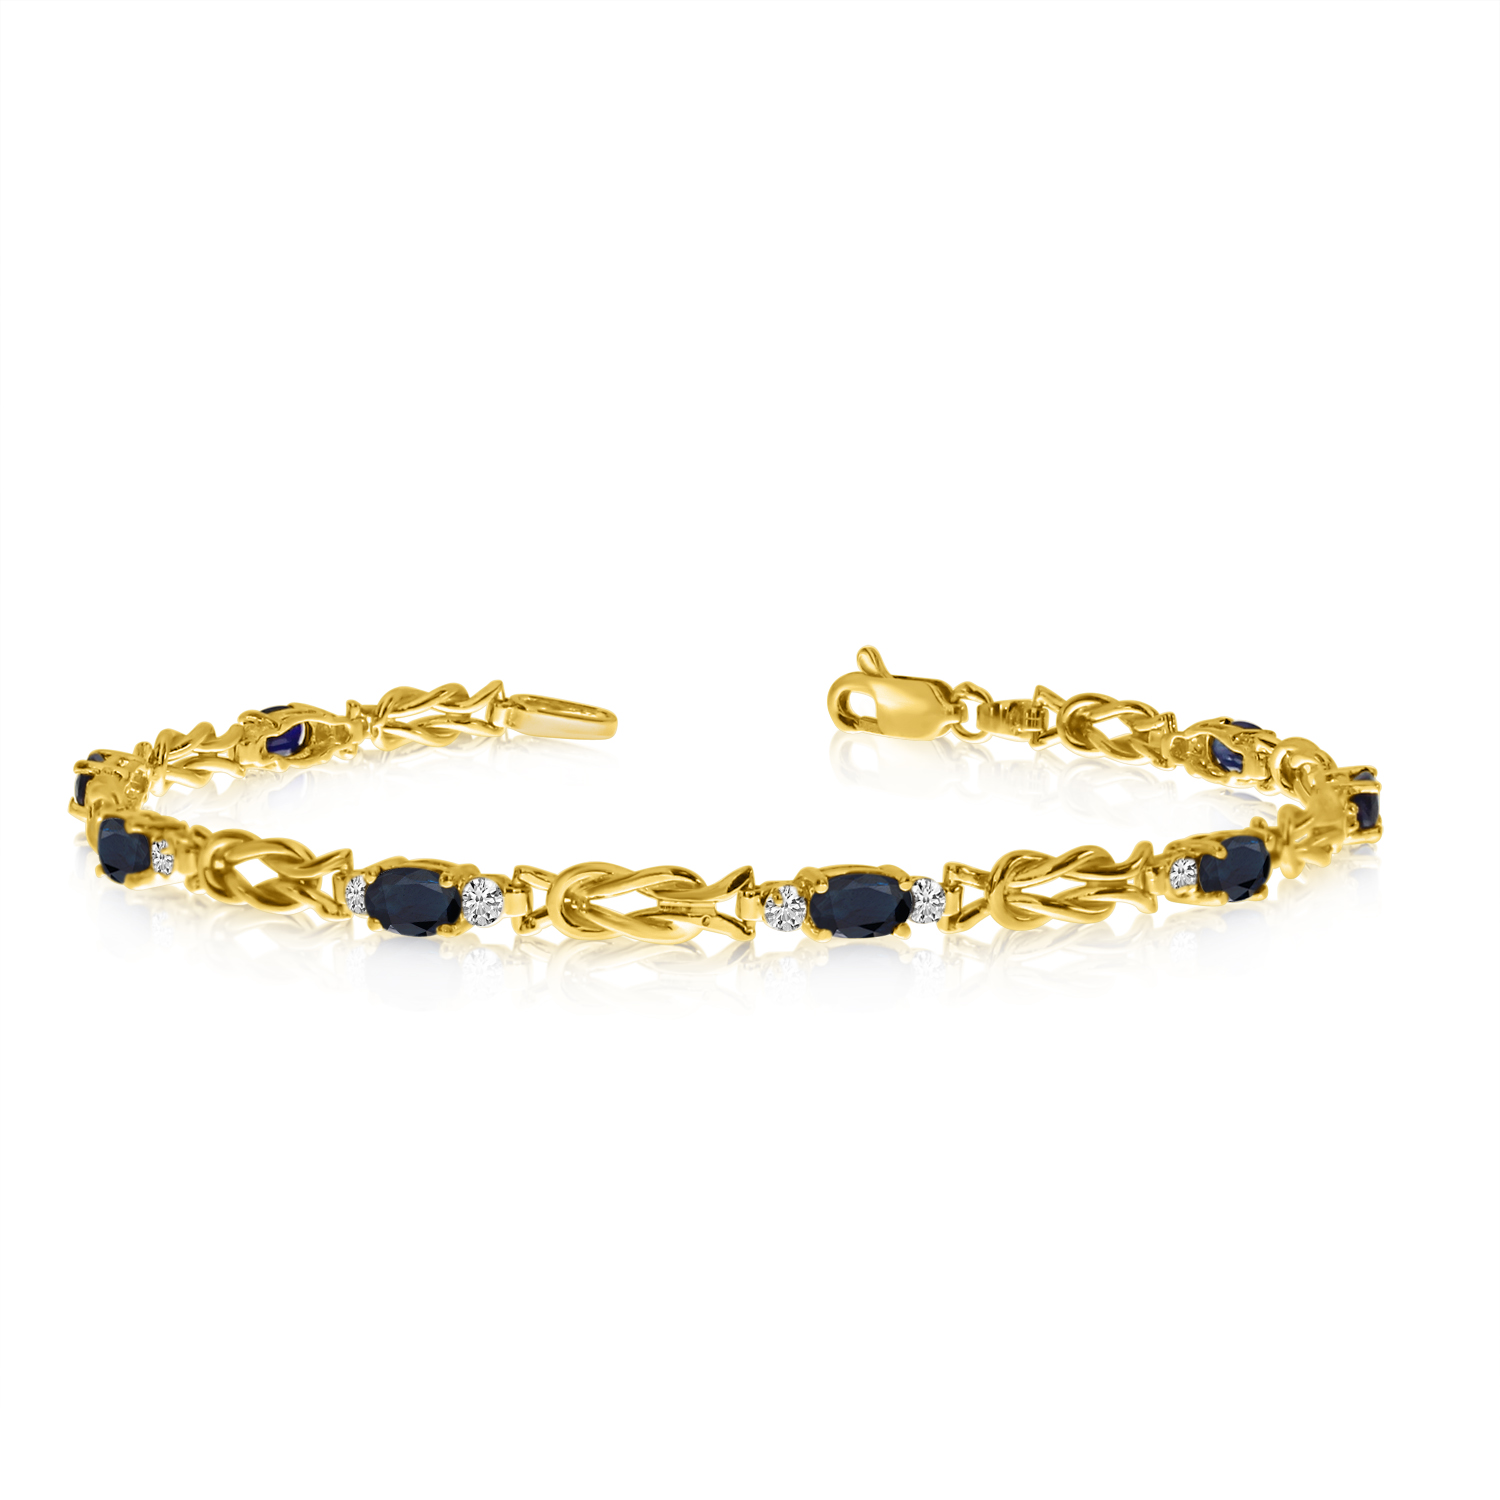 10K Yellow Gold Oval Sapphire and Diamond Bracelet by